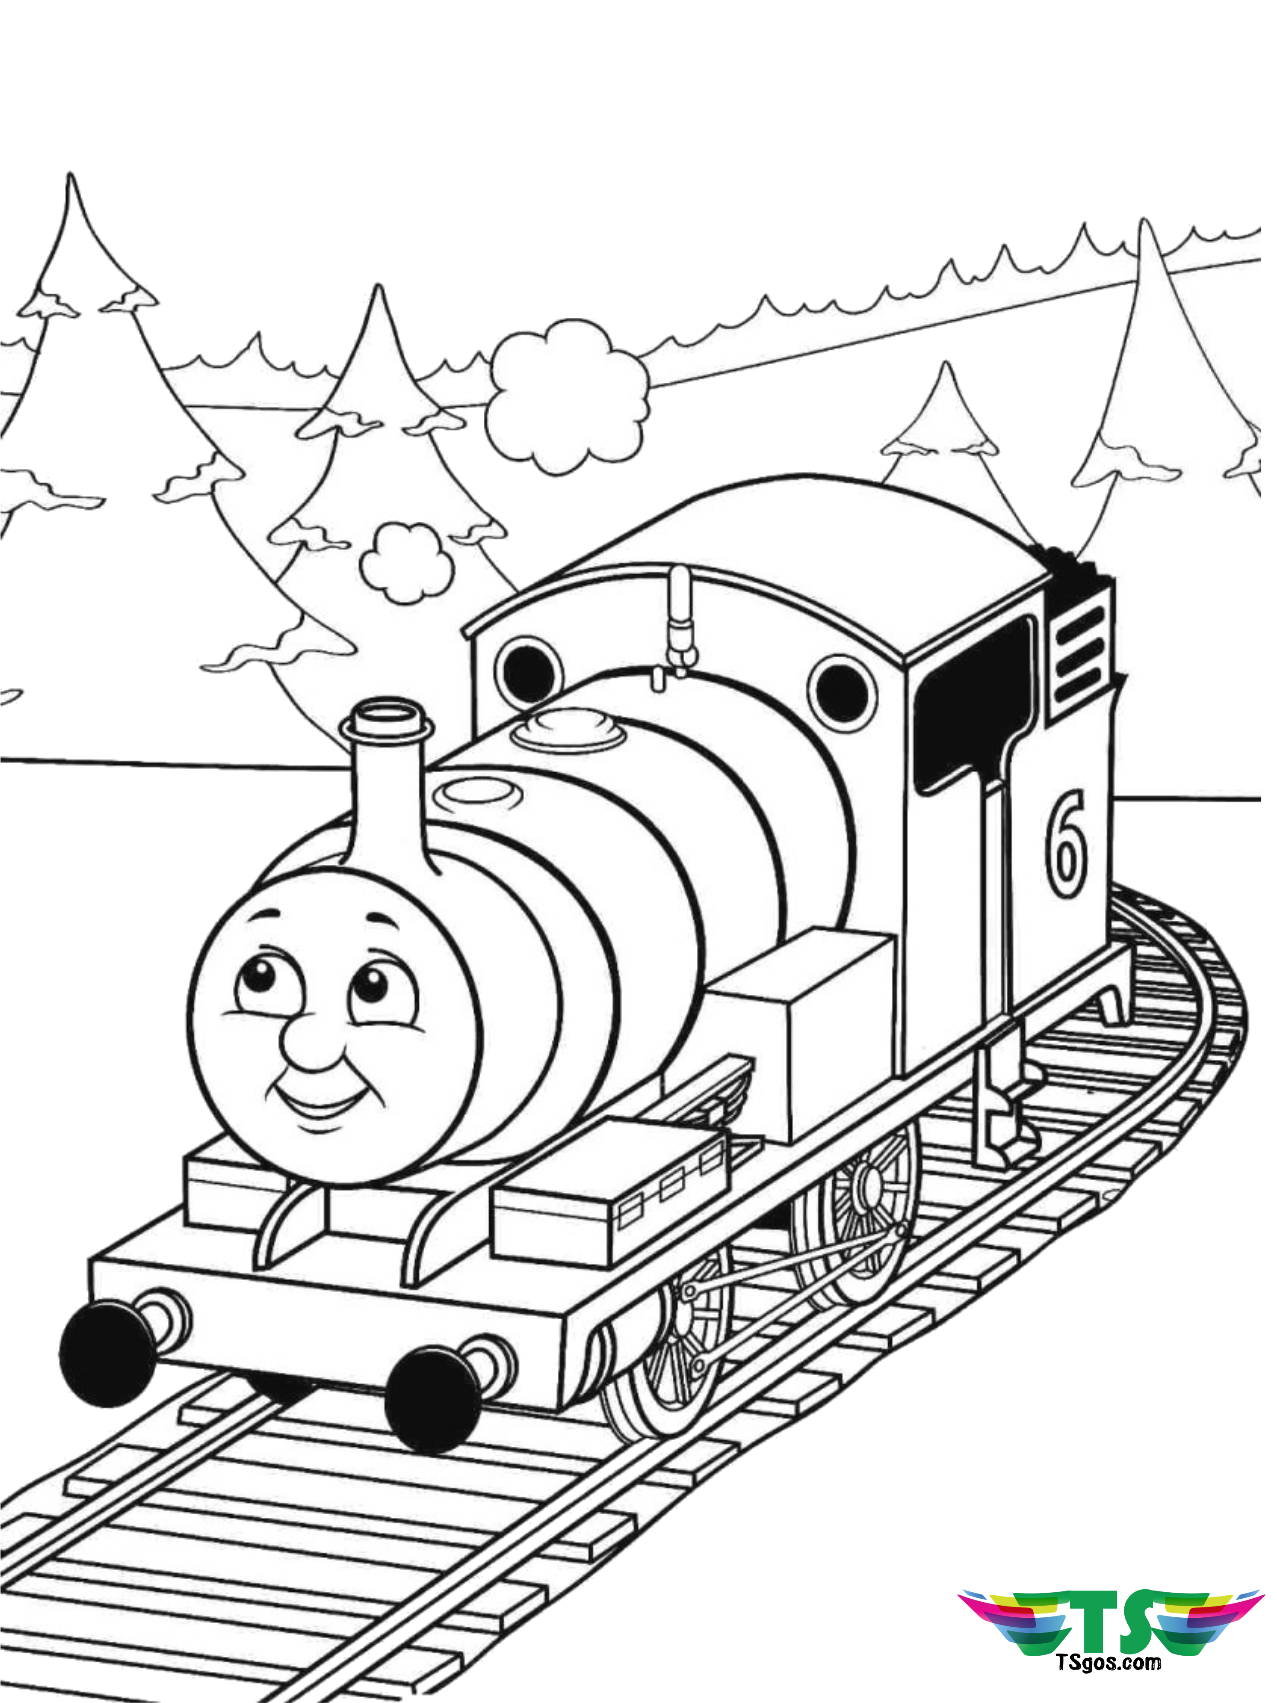 train engine coloring page thomas the train coloring sheets neo coloring train page coloring engine